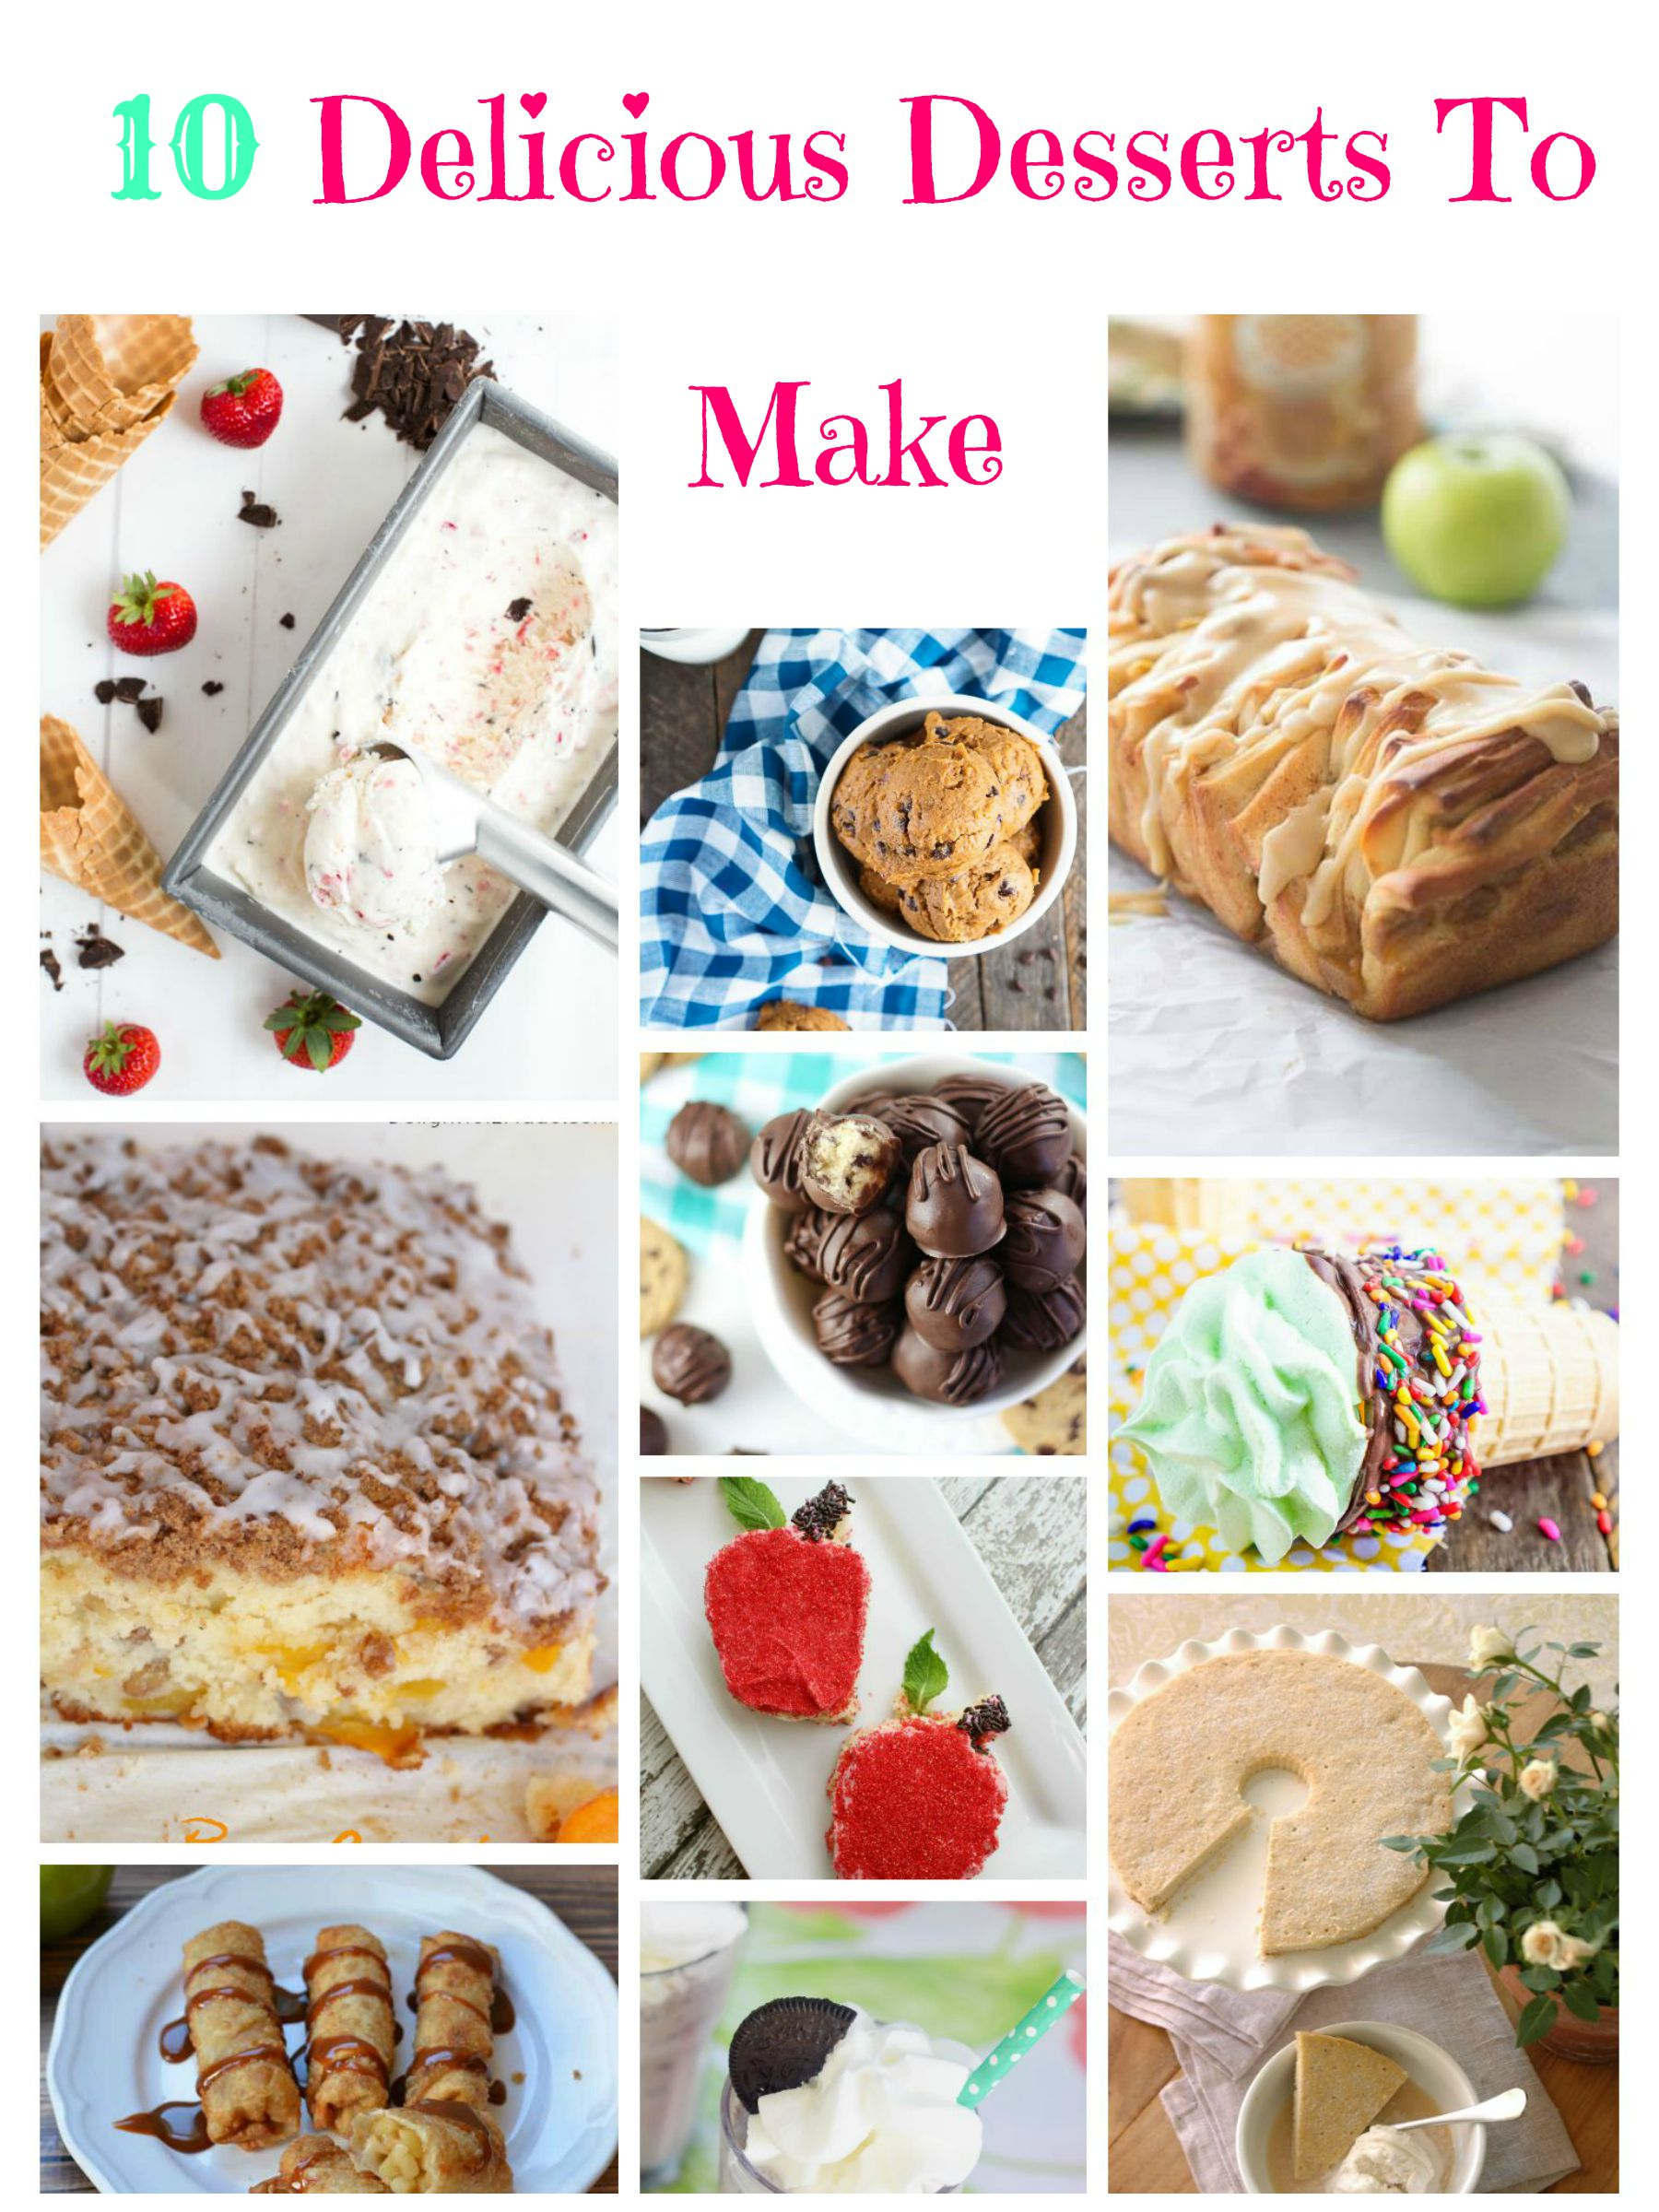 desserts delicious mouth watering inspire monday uncommon looks absolutely myuncommonsliceofsuburbia